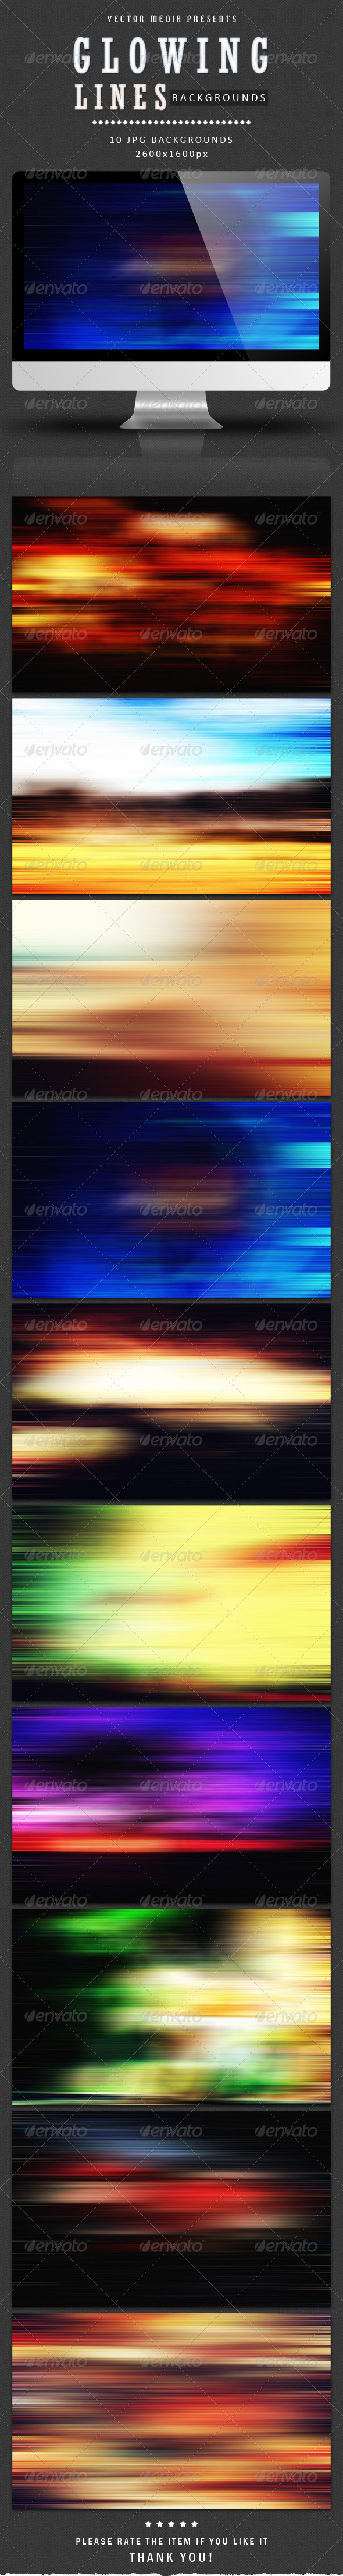 GraphicRiver Glowing Lines Backgrounds 4023785